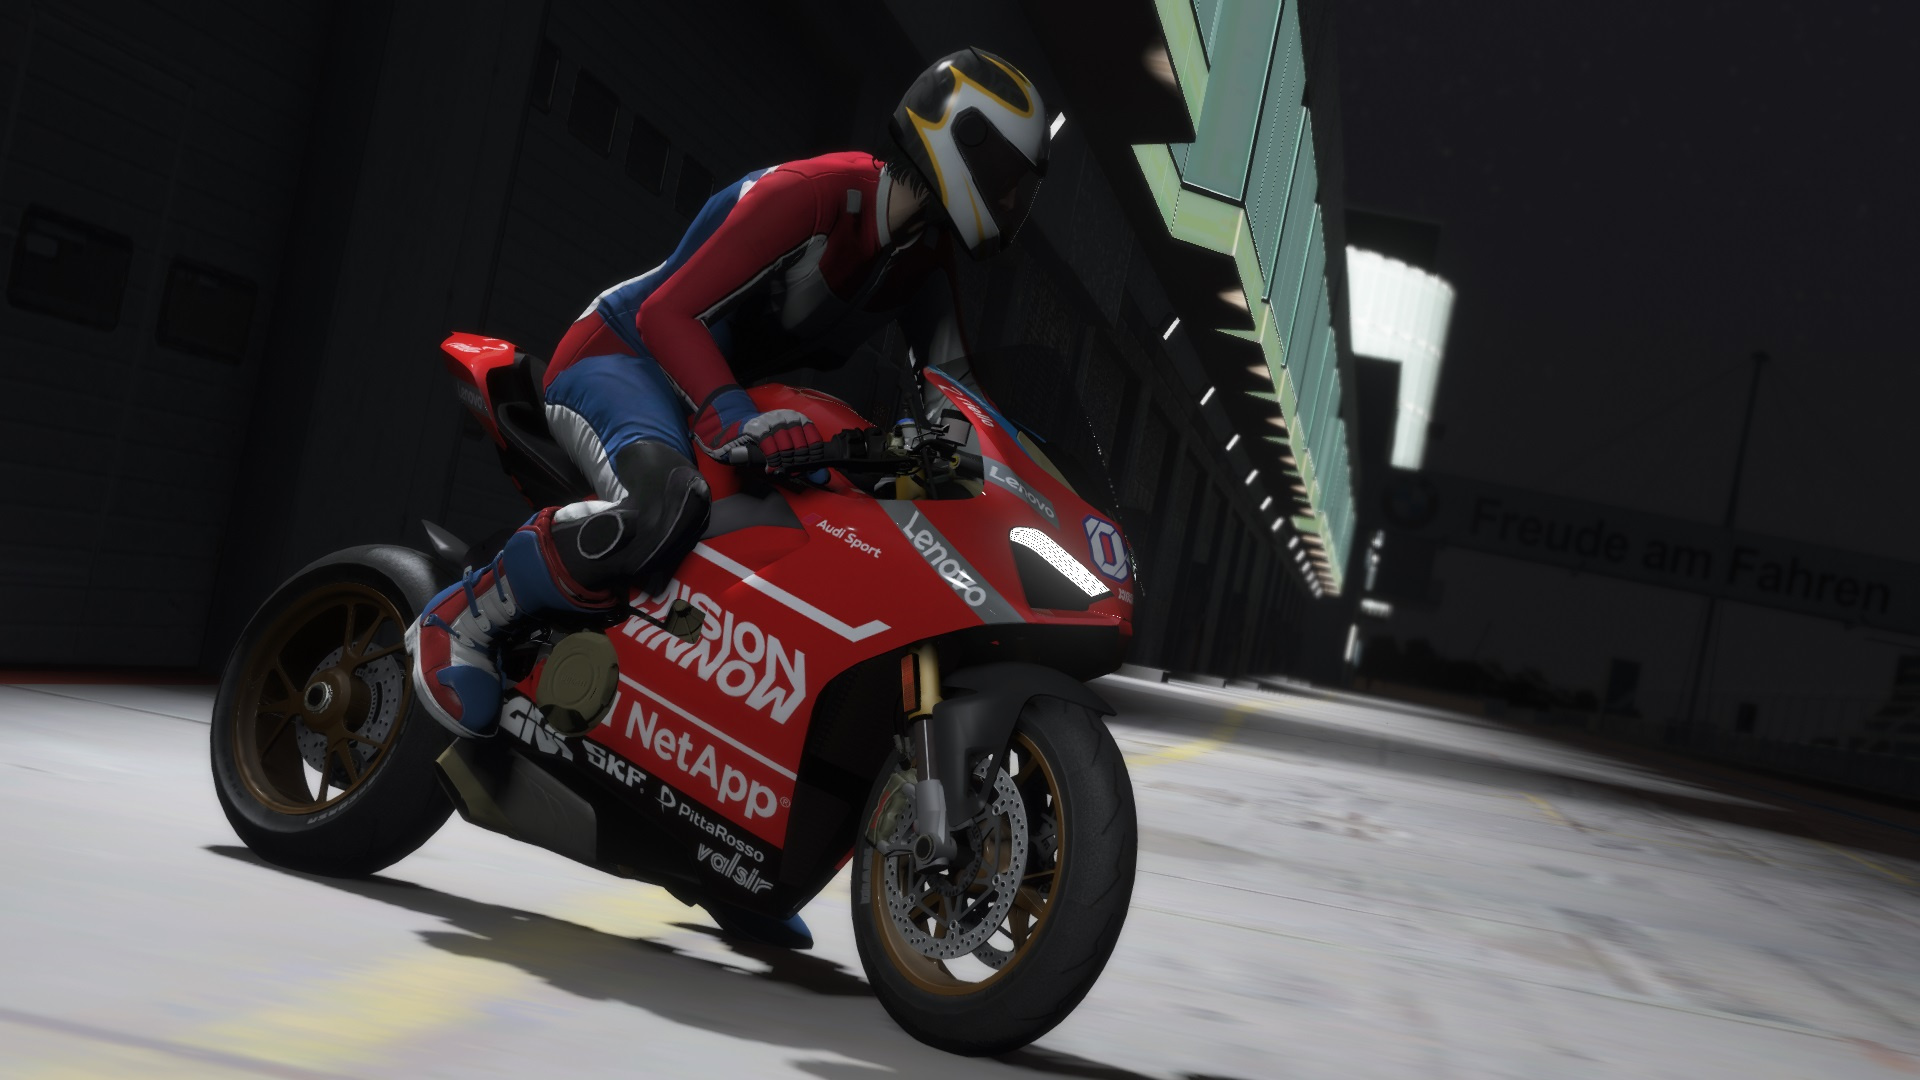 Wiring Help For All In One Tail Light Ducati Forum